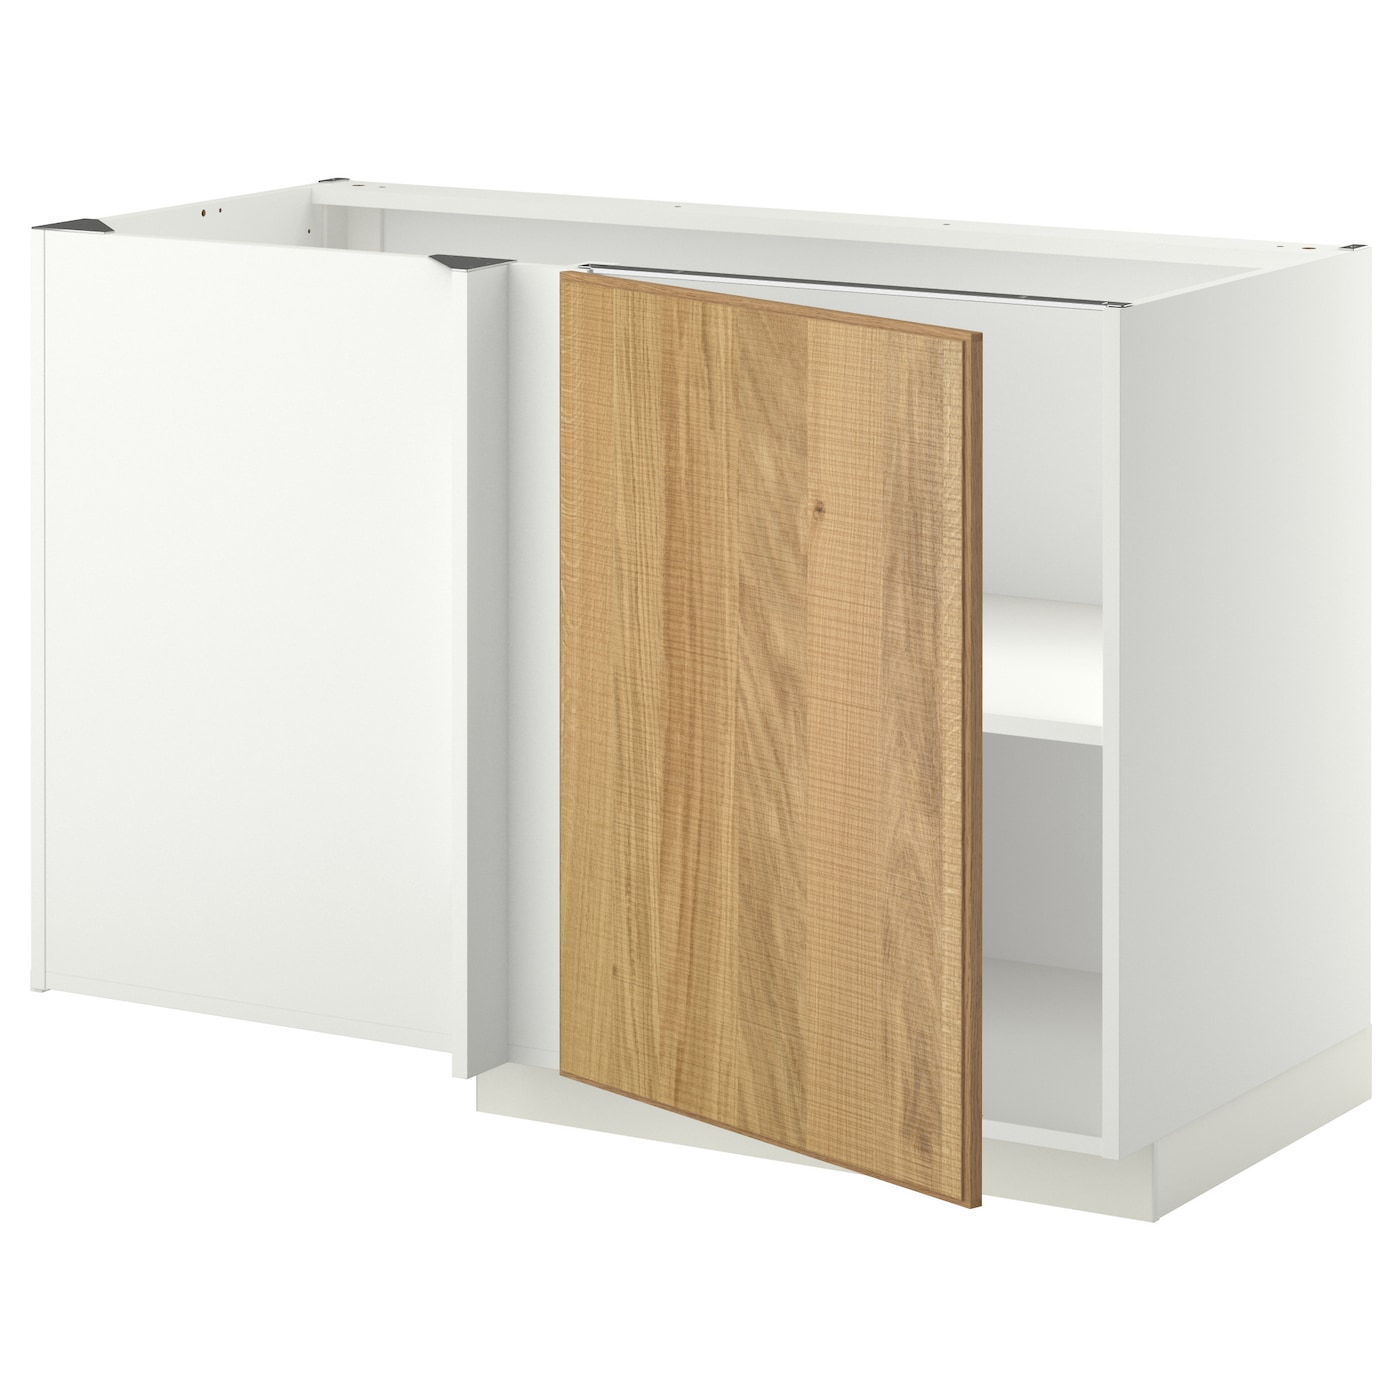 corner cabinet ikea metod corner base cabinet with shelf white hyttan oak 13913